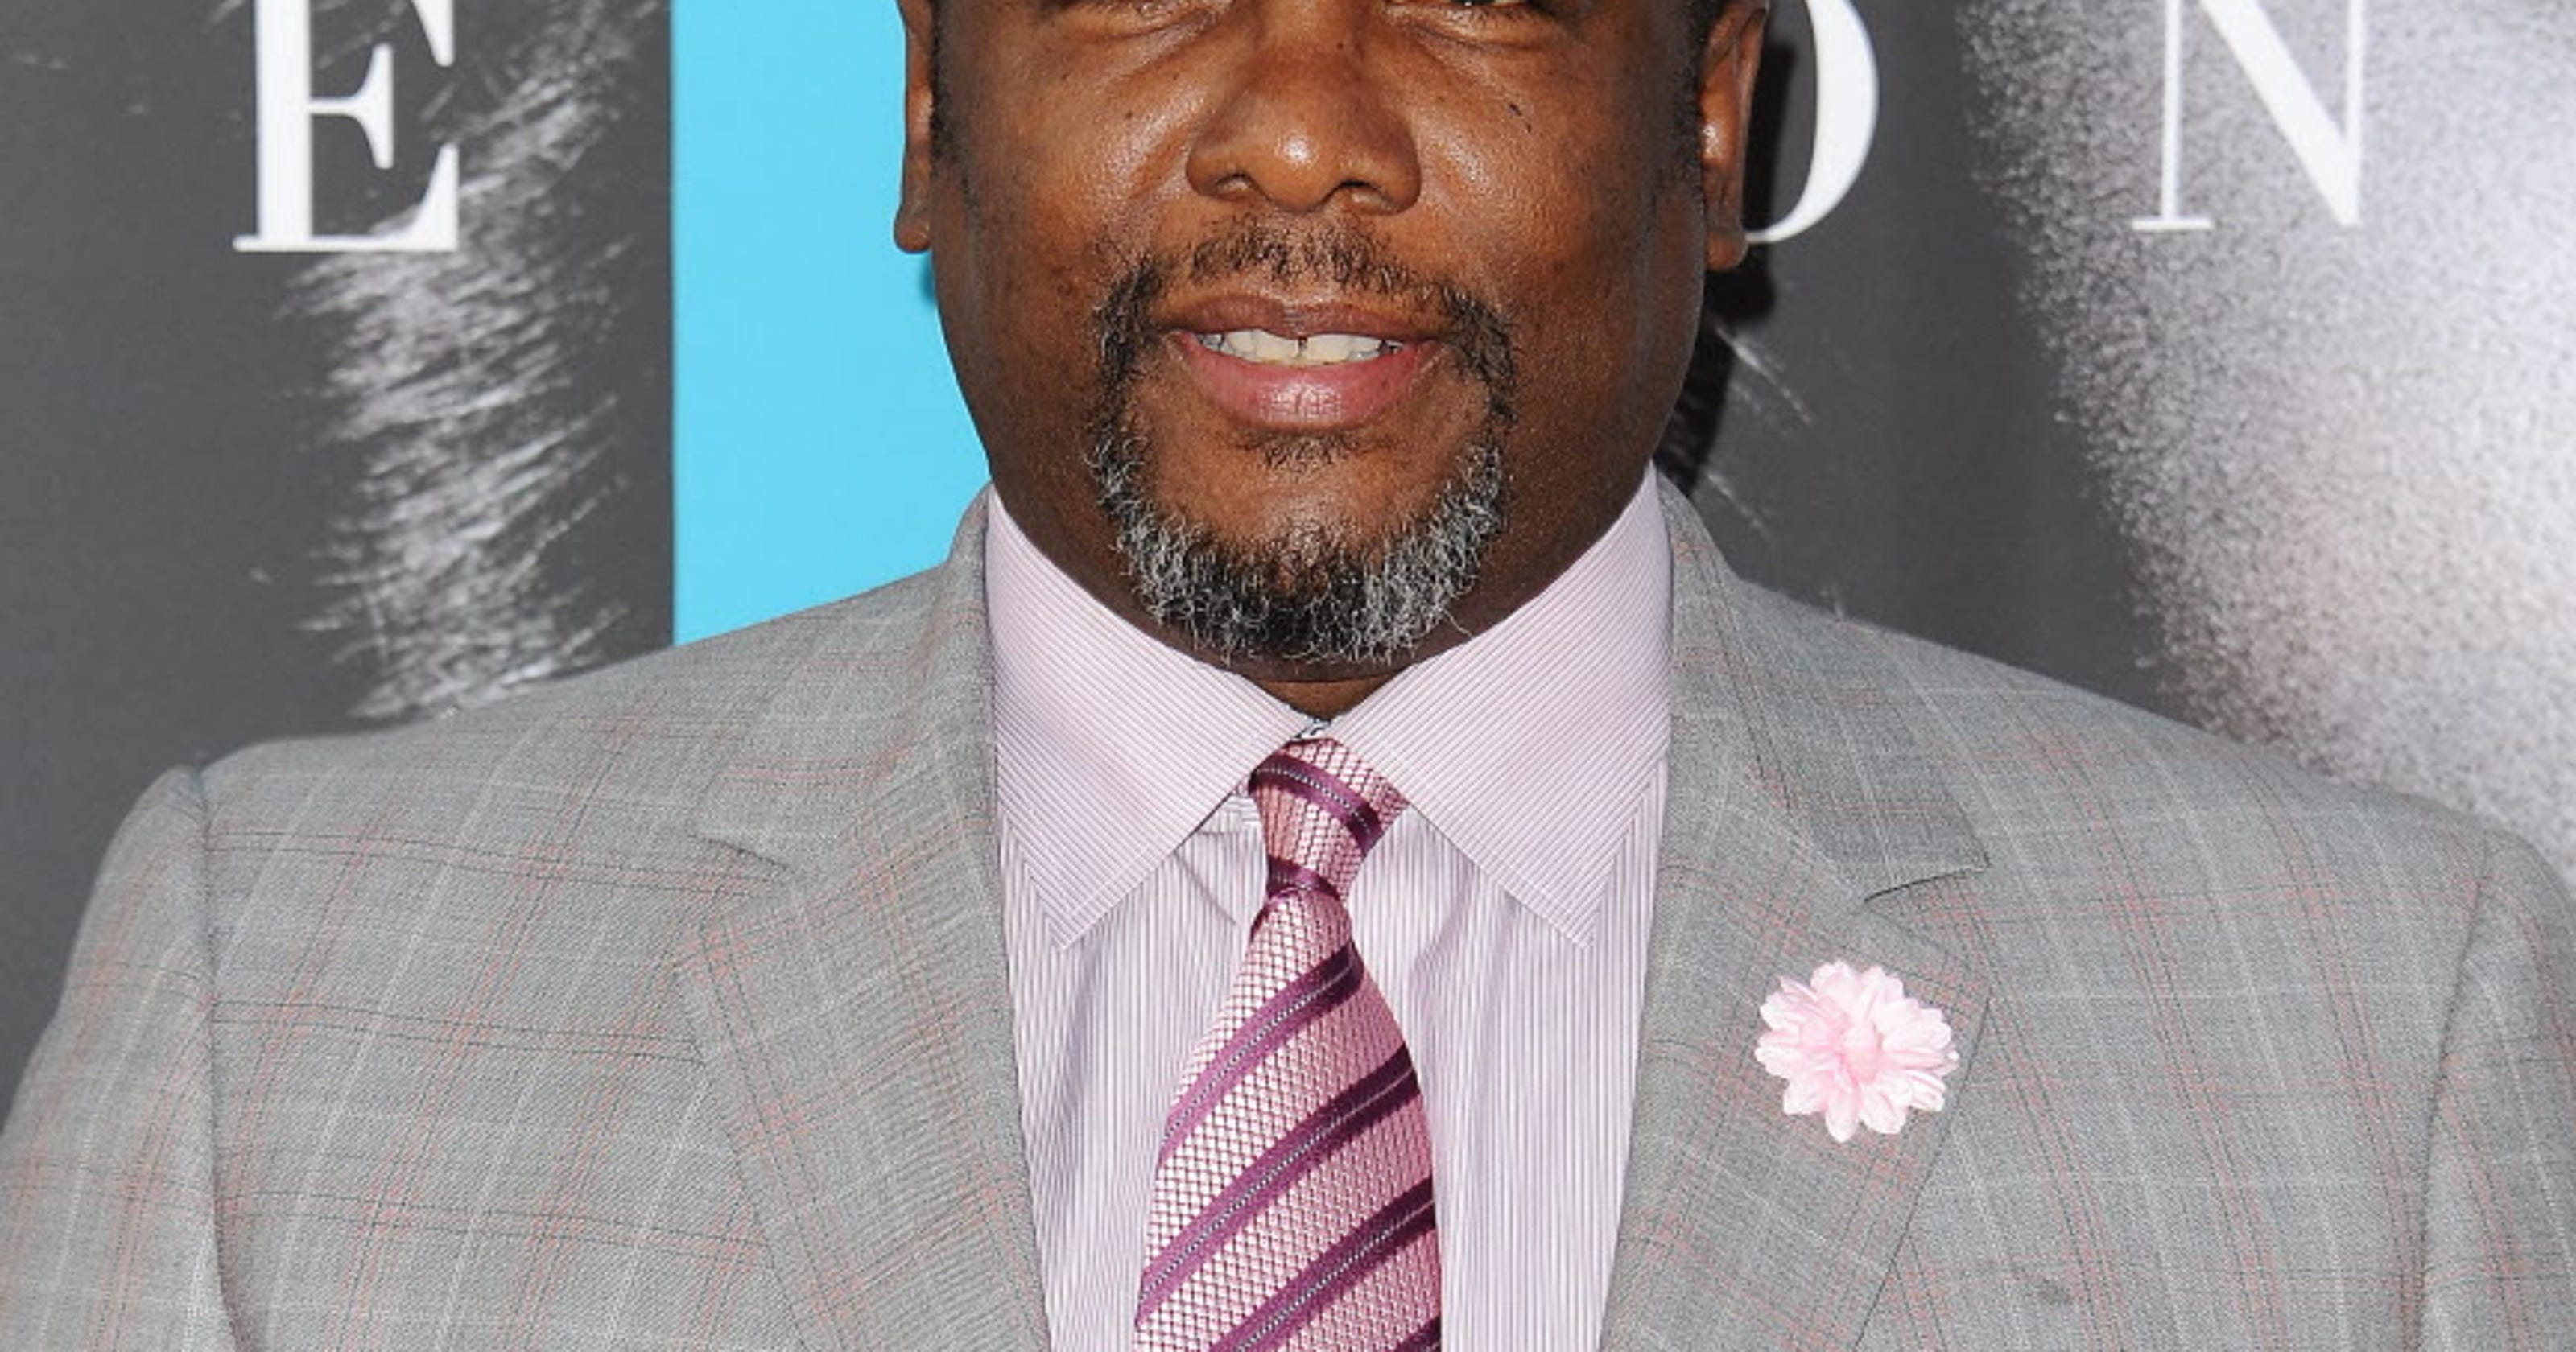 The Wire\' actor arrested in Atlanta hotel after alleged political fight